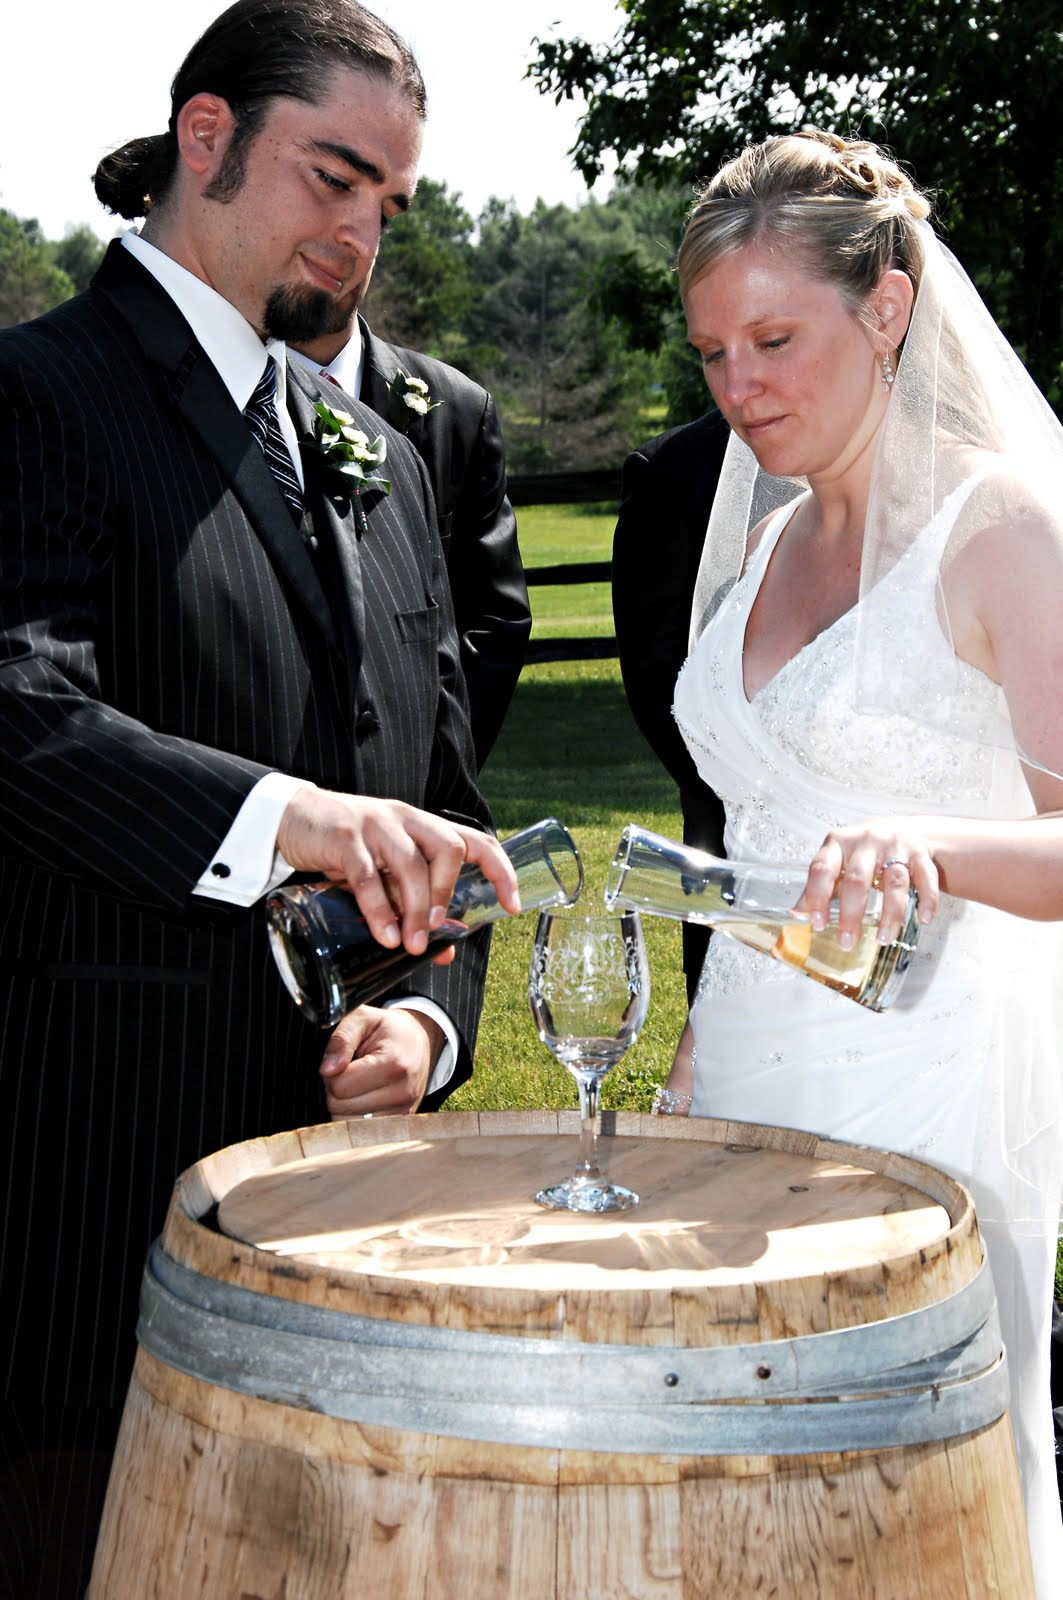 The Wine Ceremony Involves Both Bride And Groom Mixing Two Different Wines Then Drinking From Glass One Is Sweet